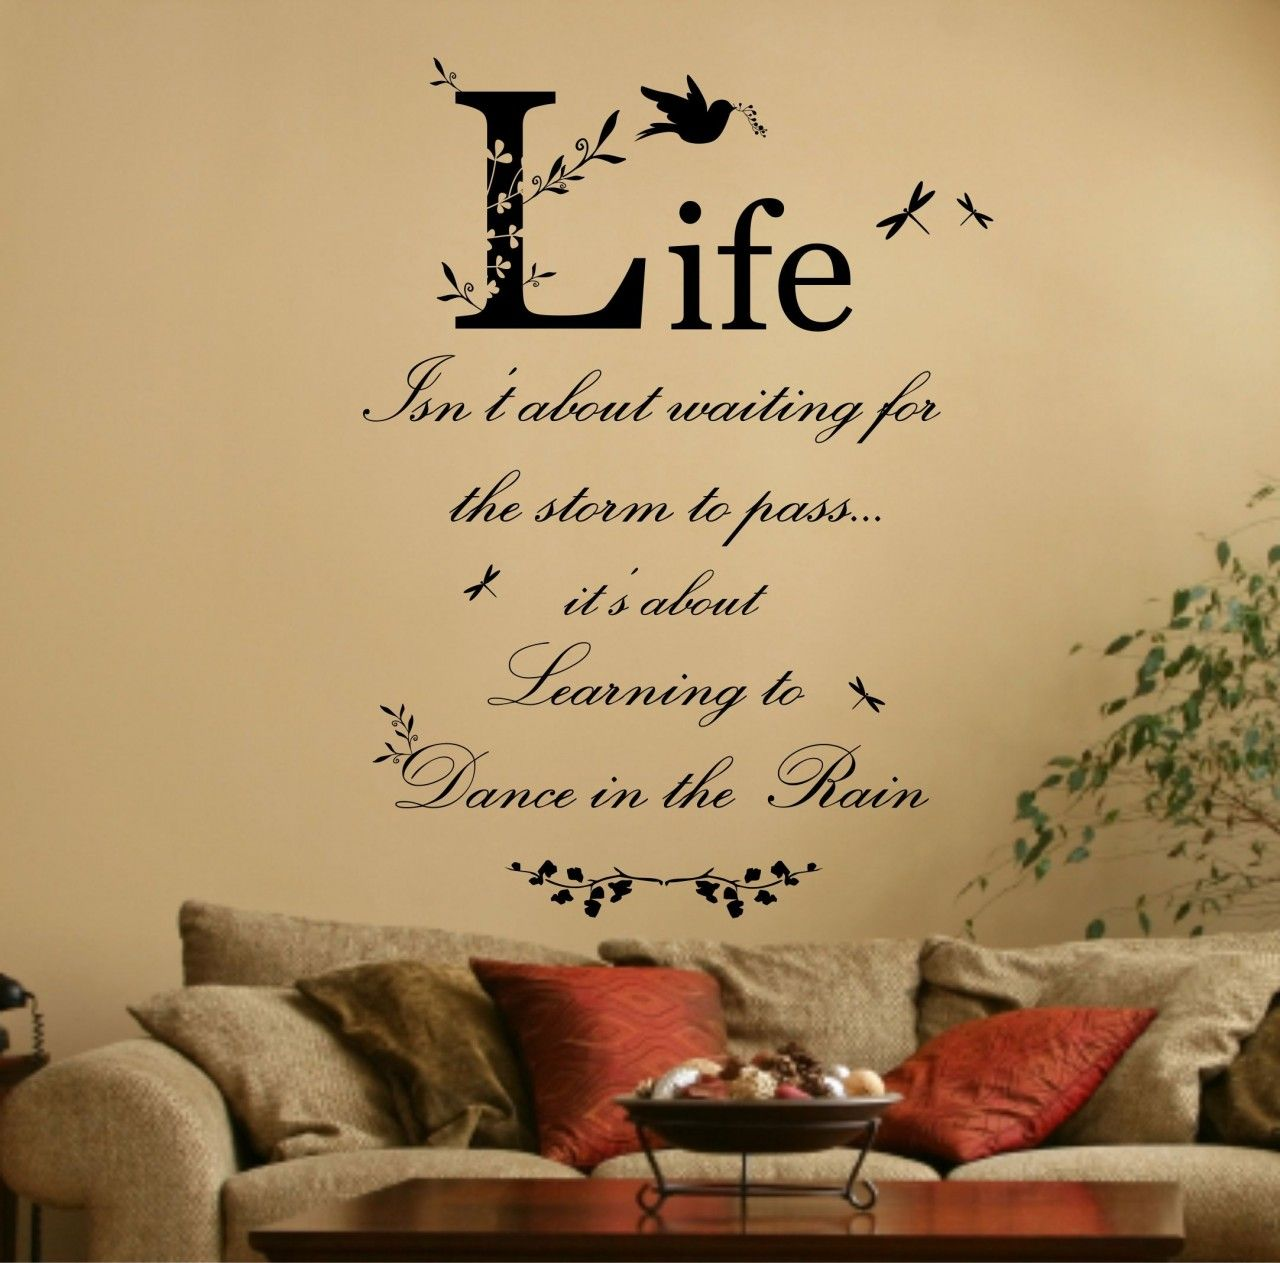 Sticker for walls quotes - Trending Wall Art Quotes Decals For Home Decor